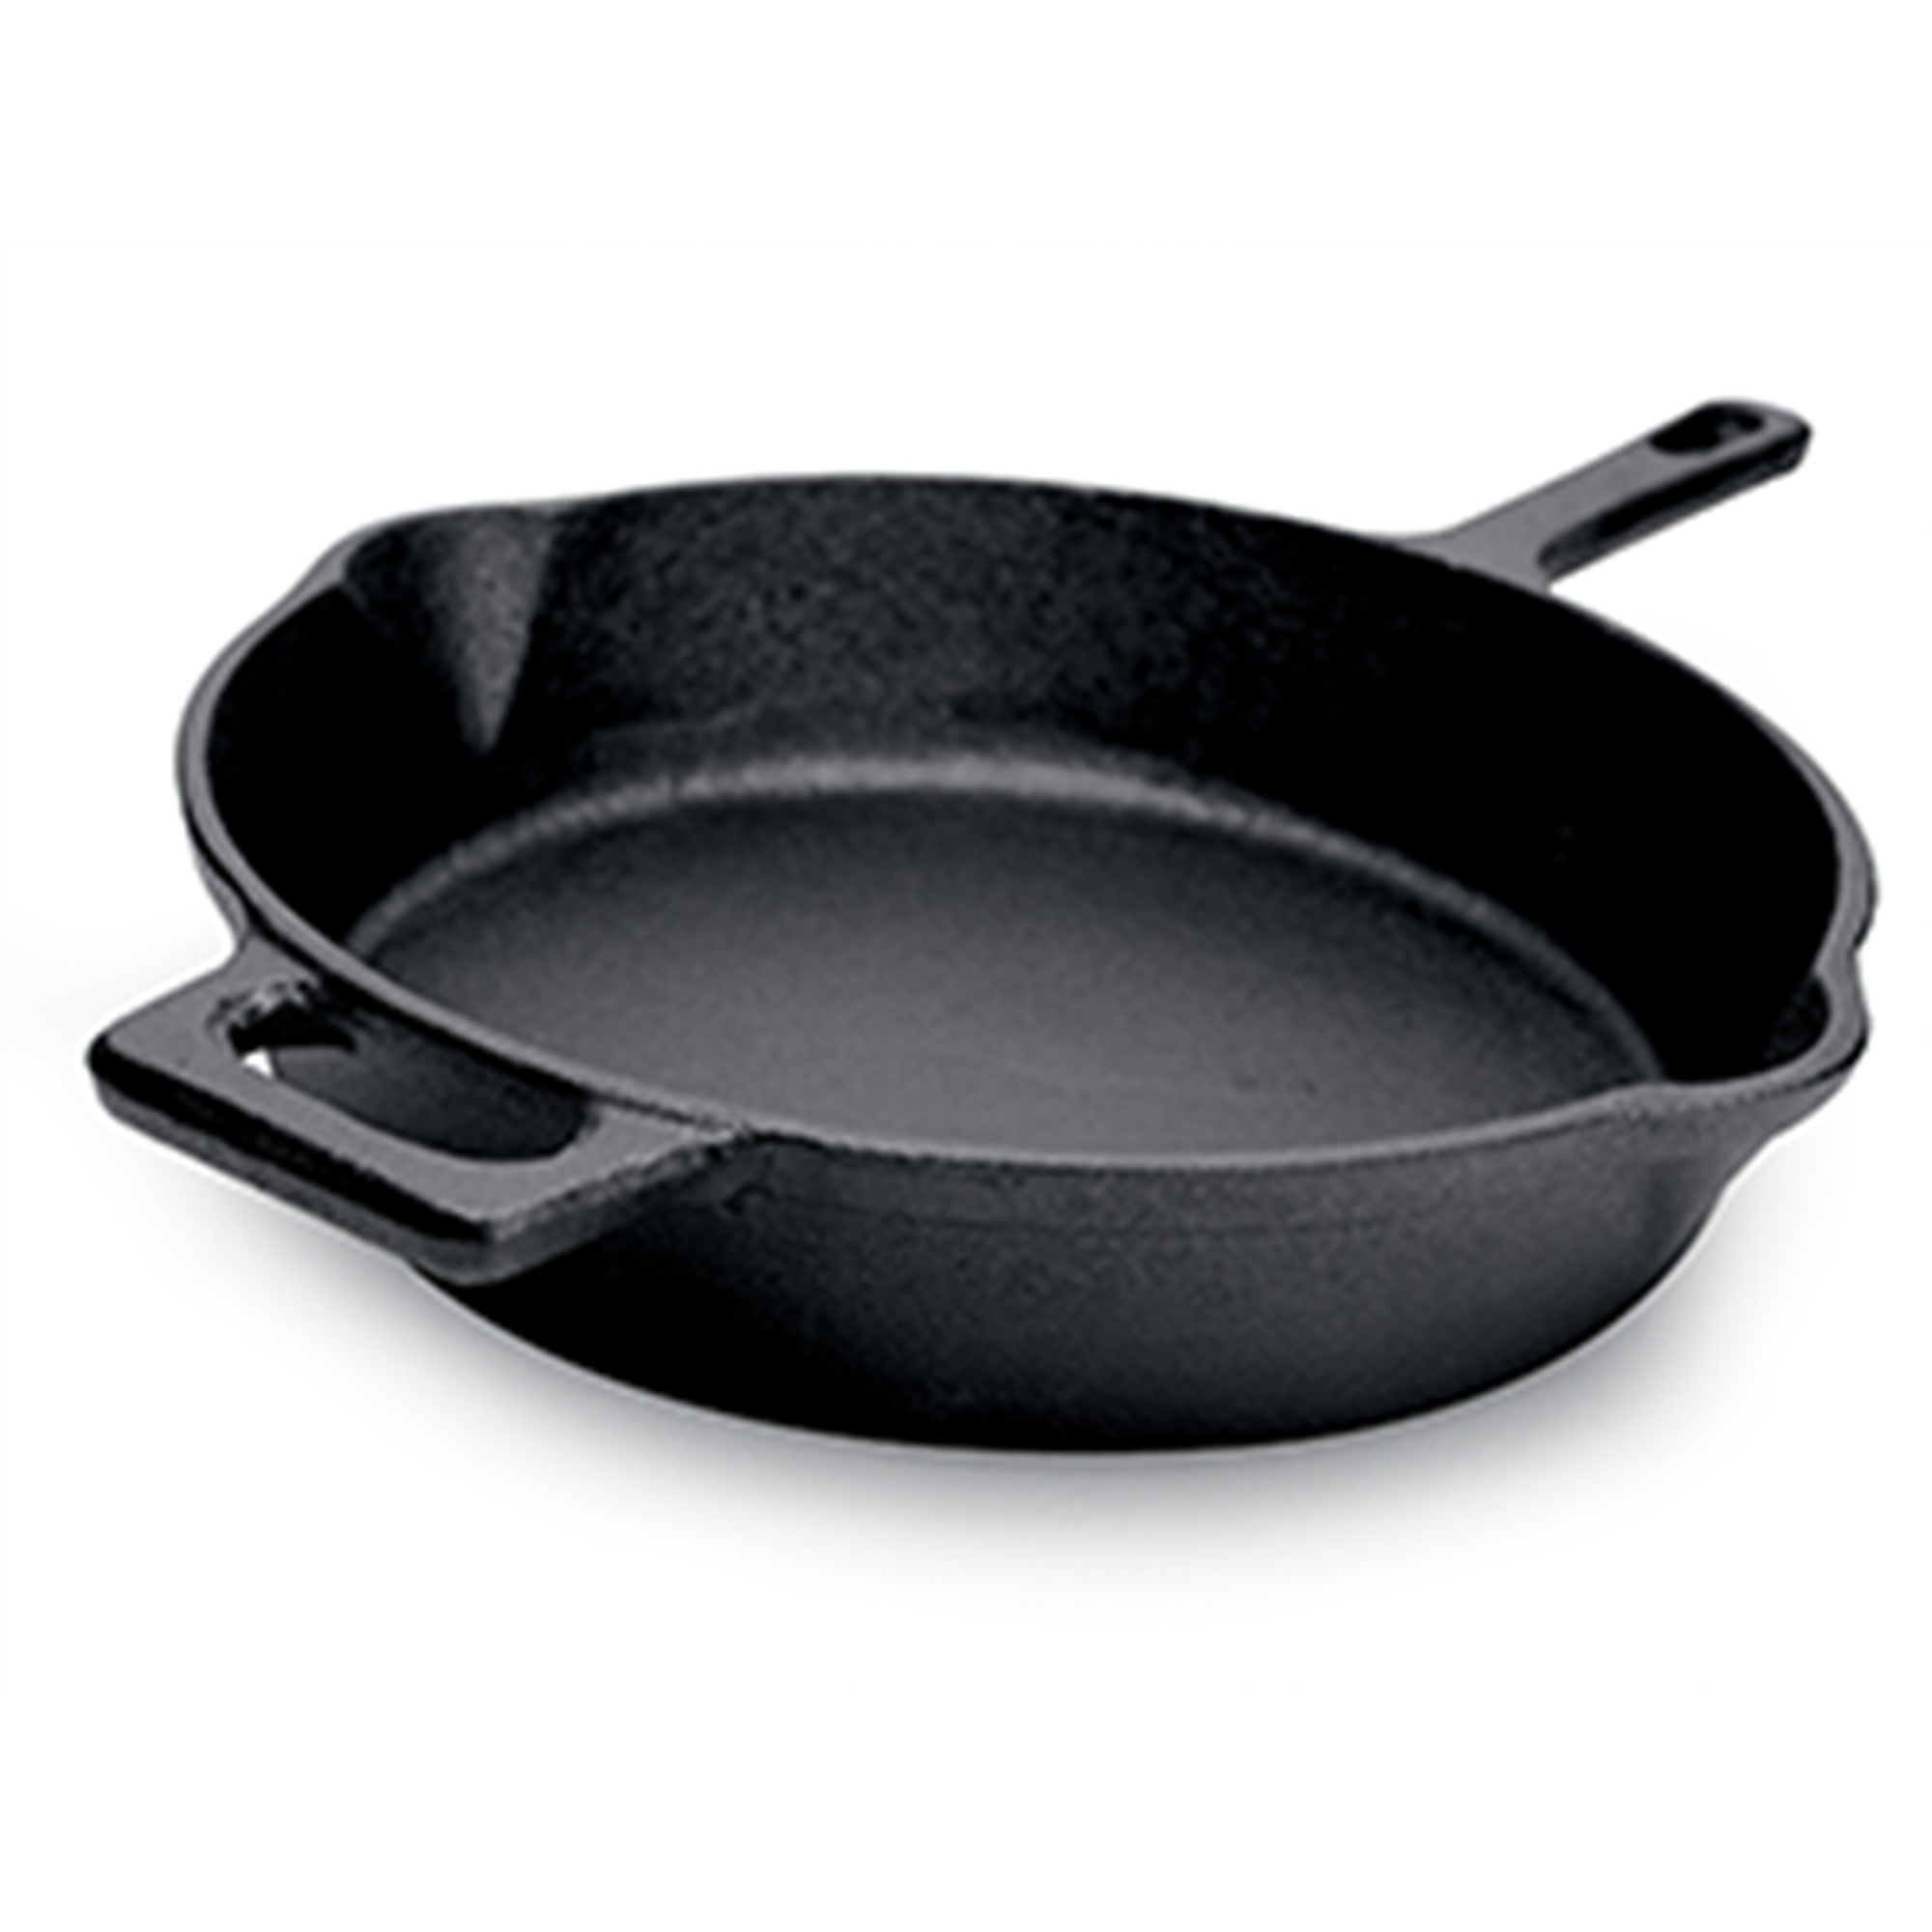 "Ecolution EOBK5124 9.5"" Farmhouse Fry Pan, Cast Iron Black"